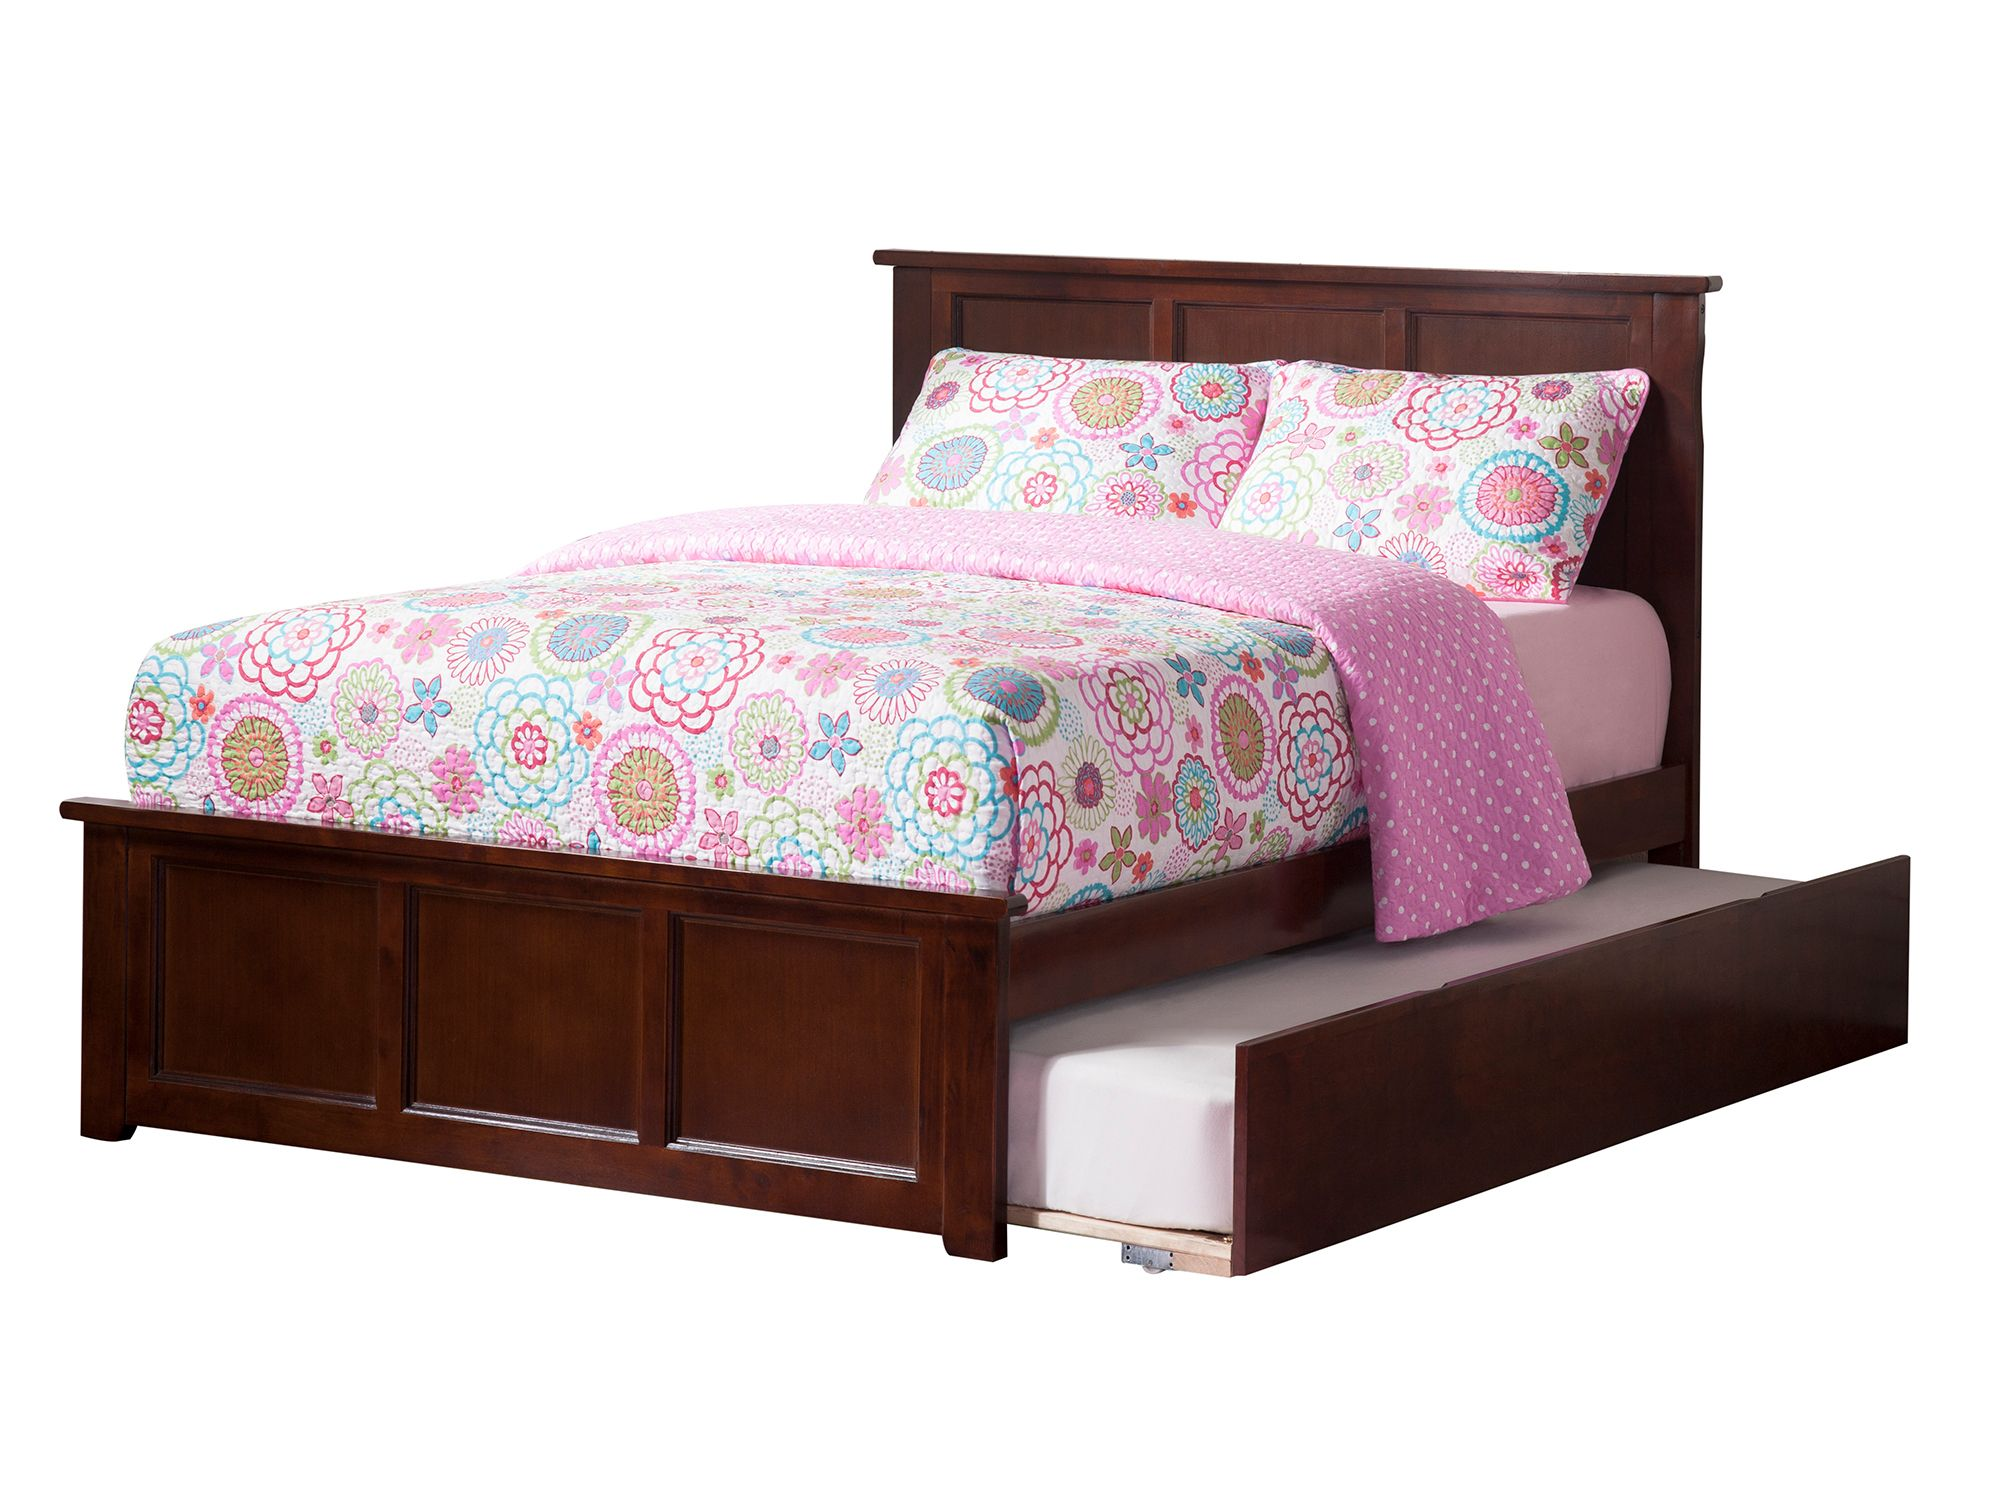 Home Atlantic furniture, Full platform bed, Platform bed